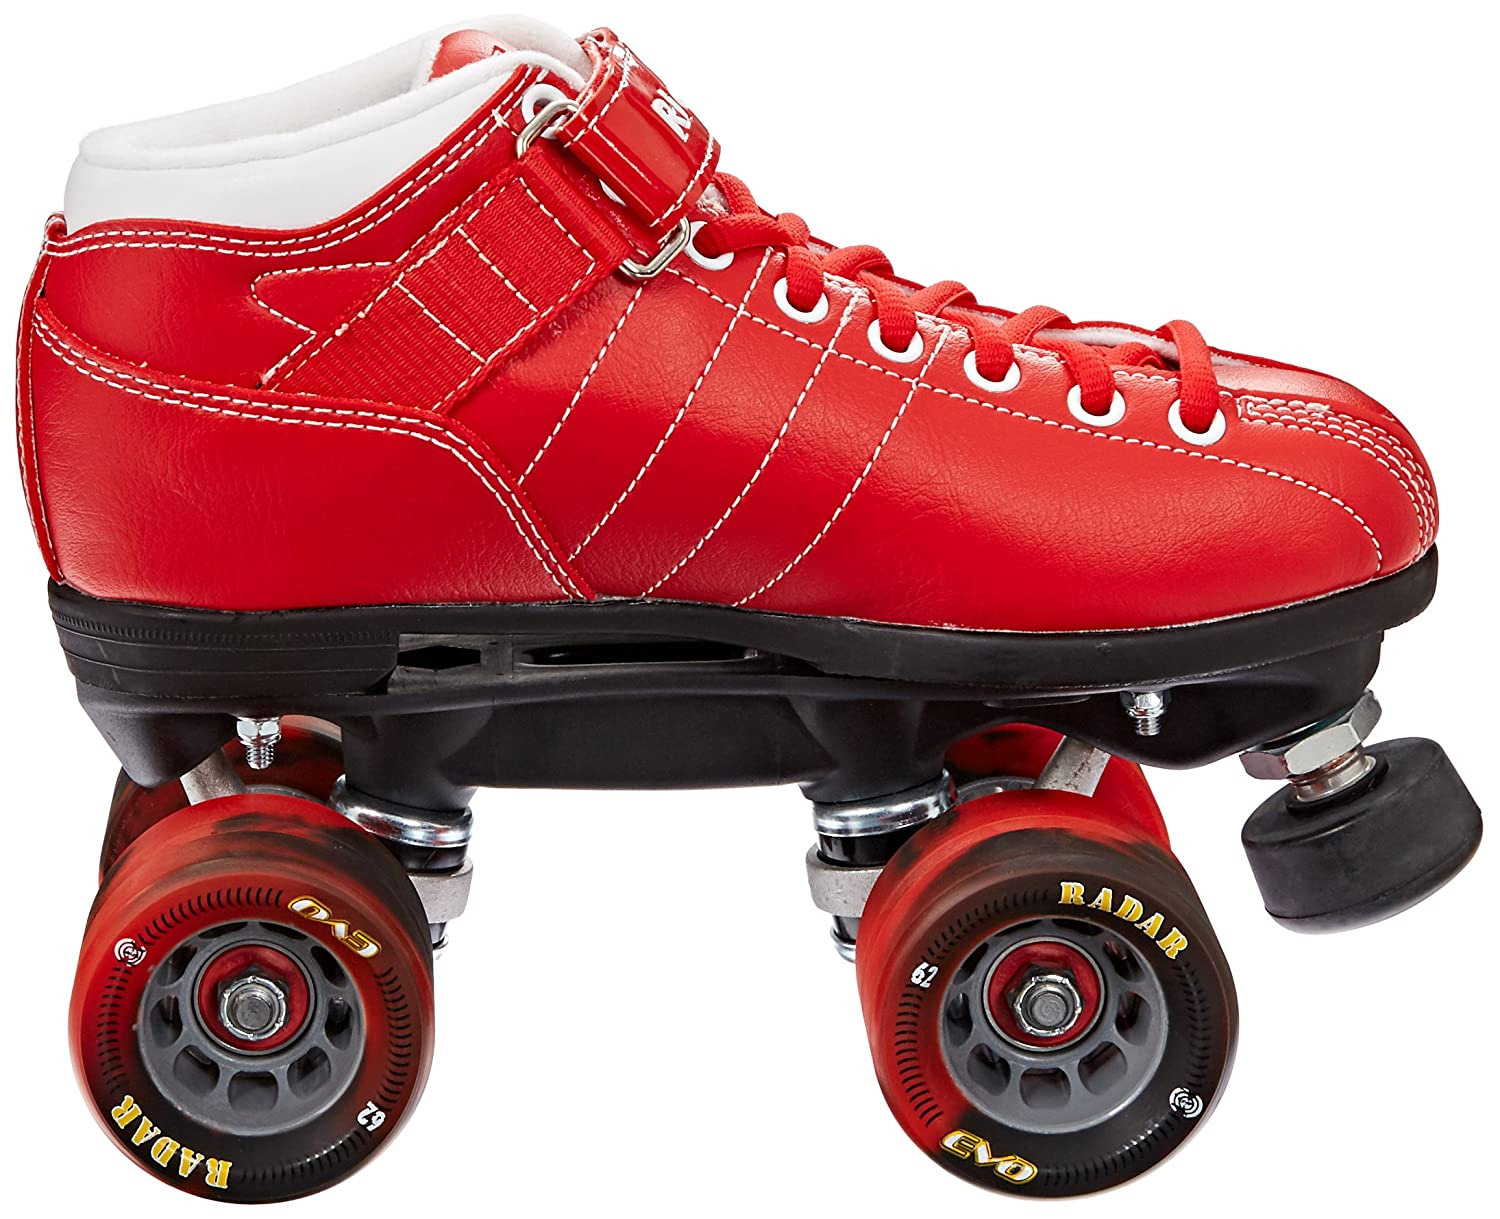 Roller skates red - Amazon Com Riedell Skates Diablo Roller Skate Red 5 Childrens Roller Skates Sports Outdoors